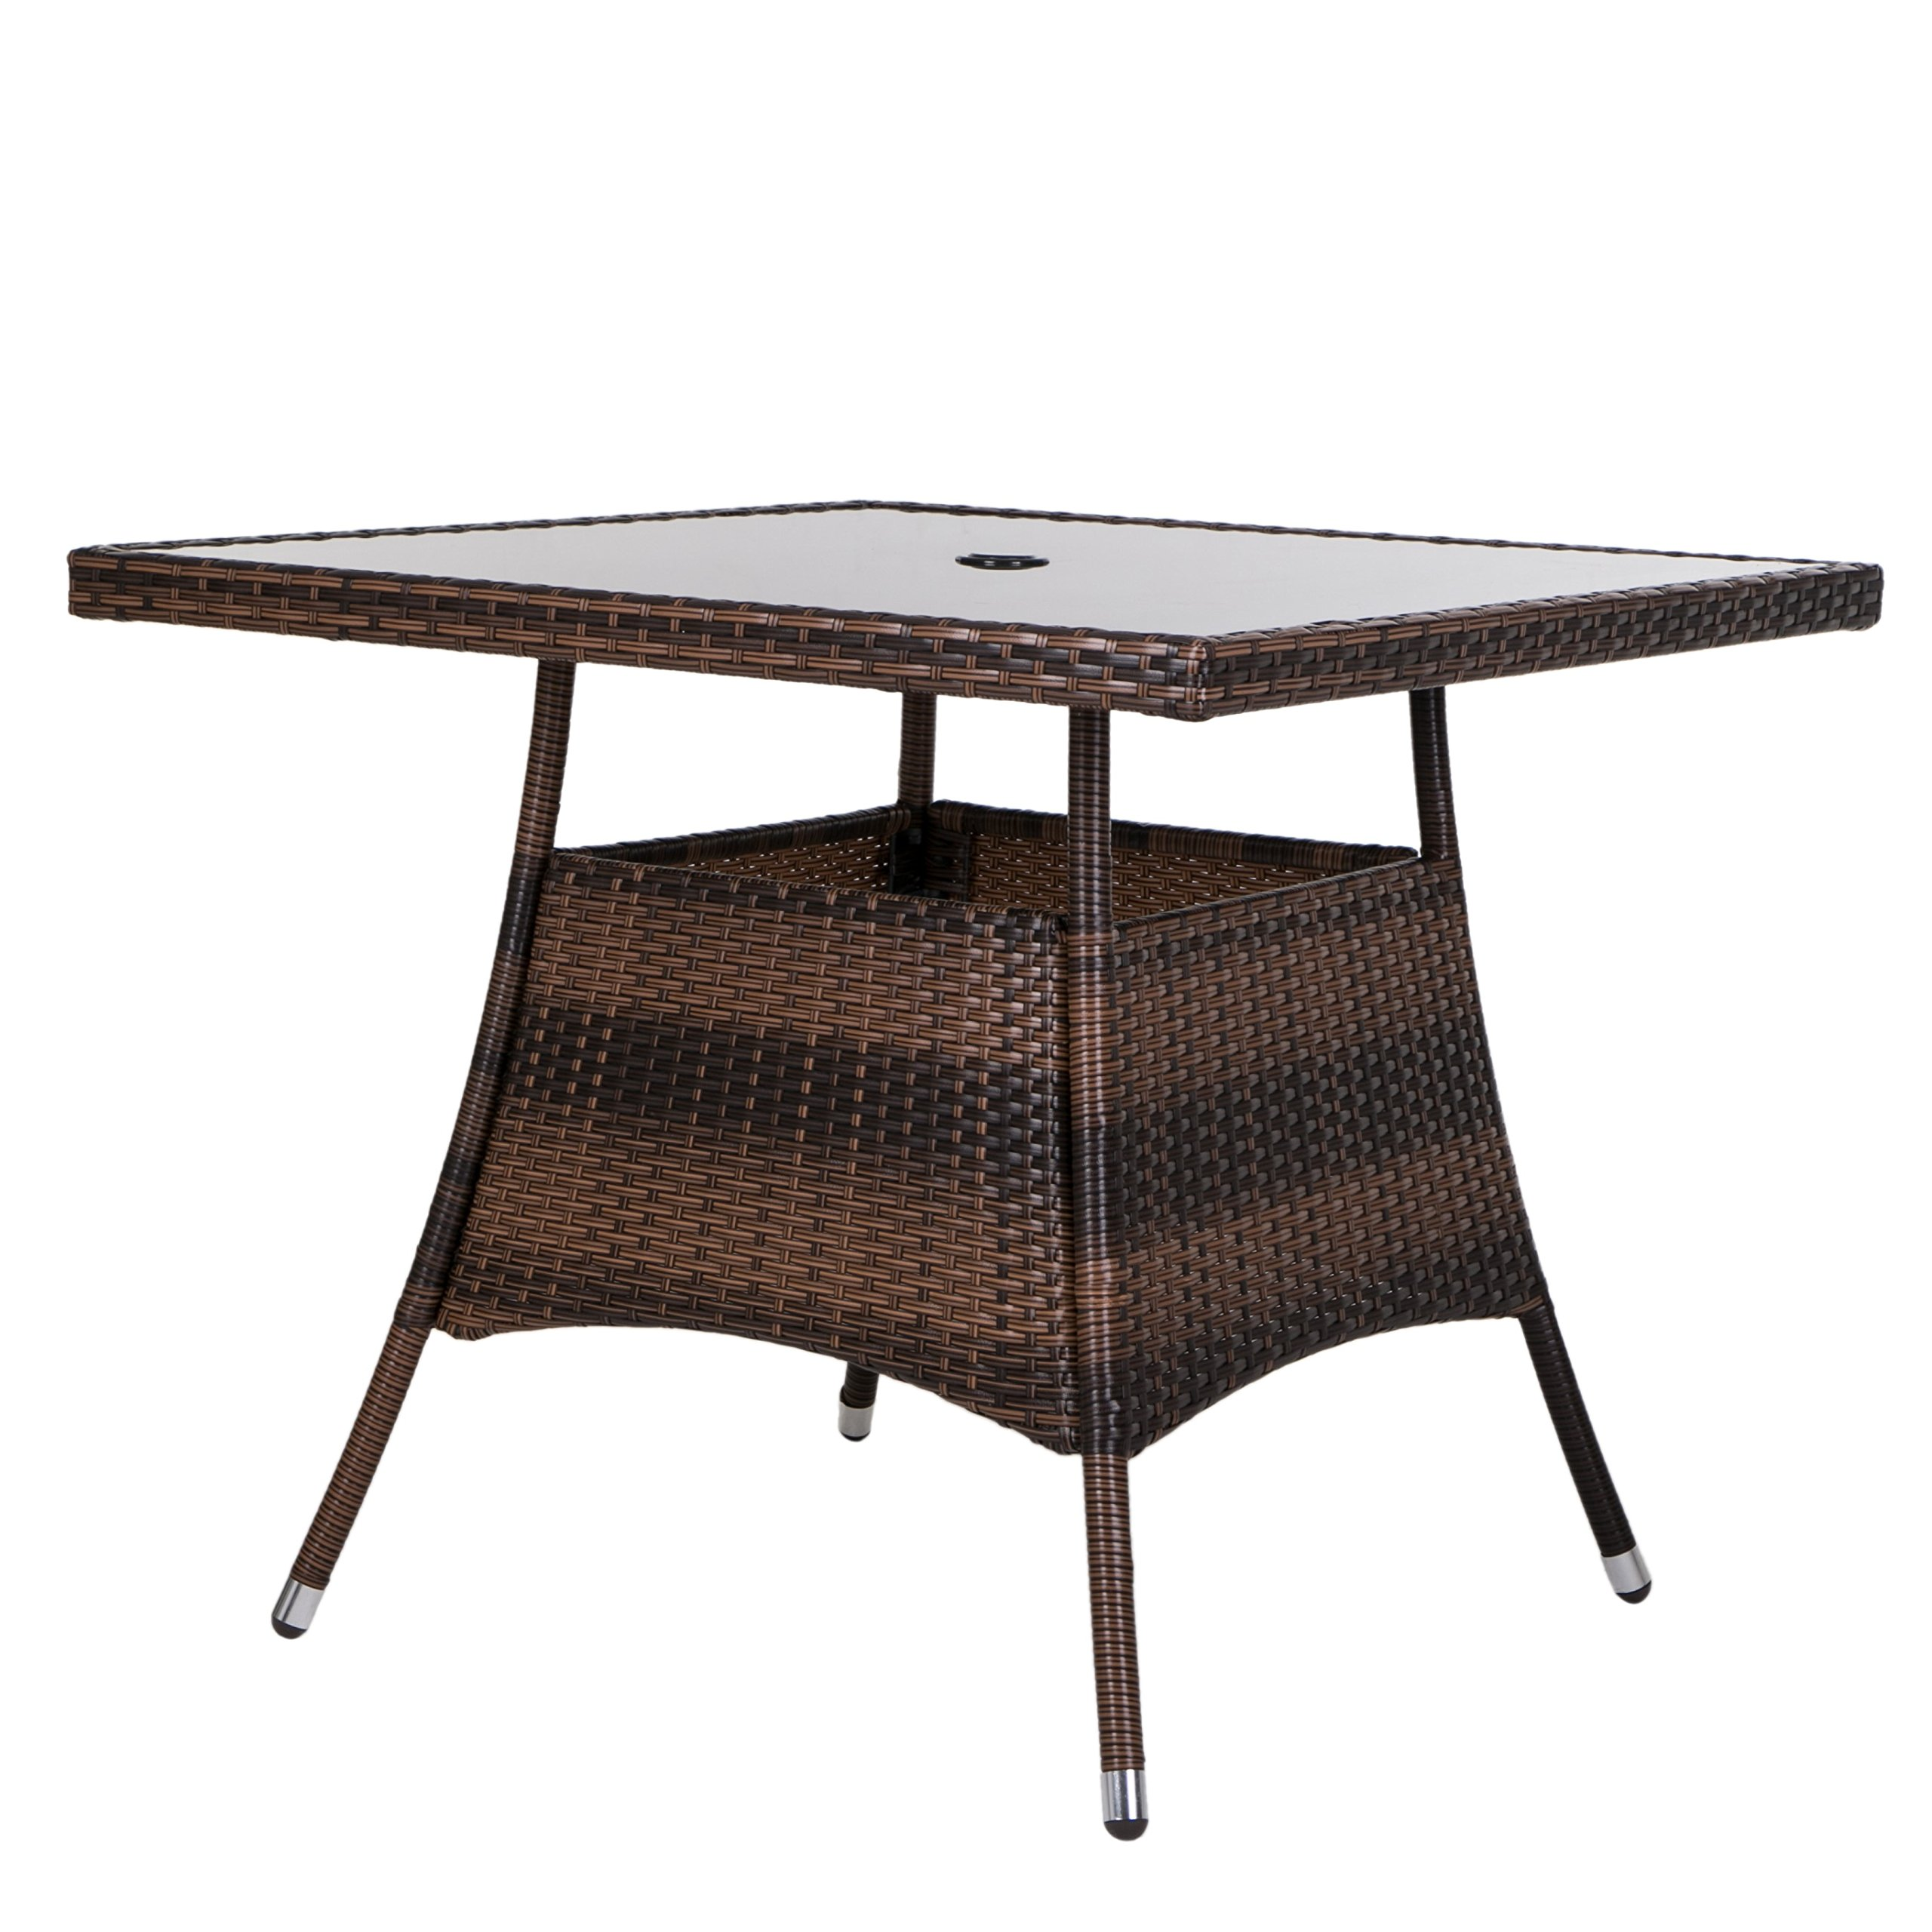 Cheap Square Glass Patio Table Find Square Glass Patio Table Deals On Line At Alibaba Com